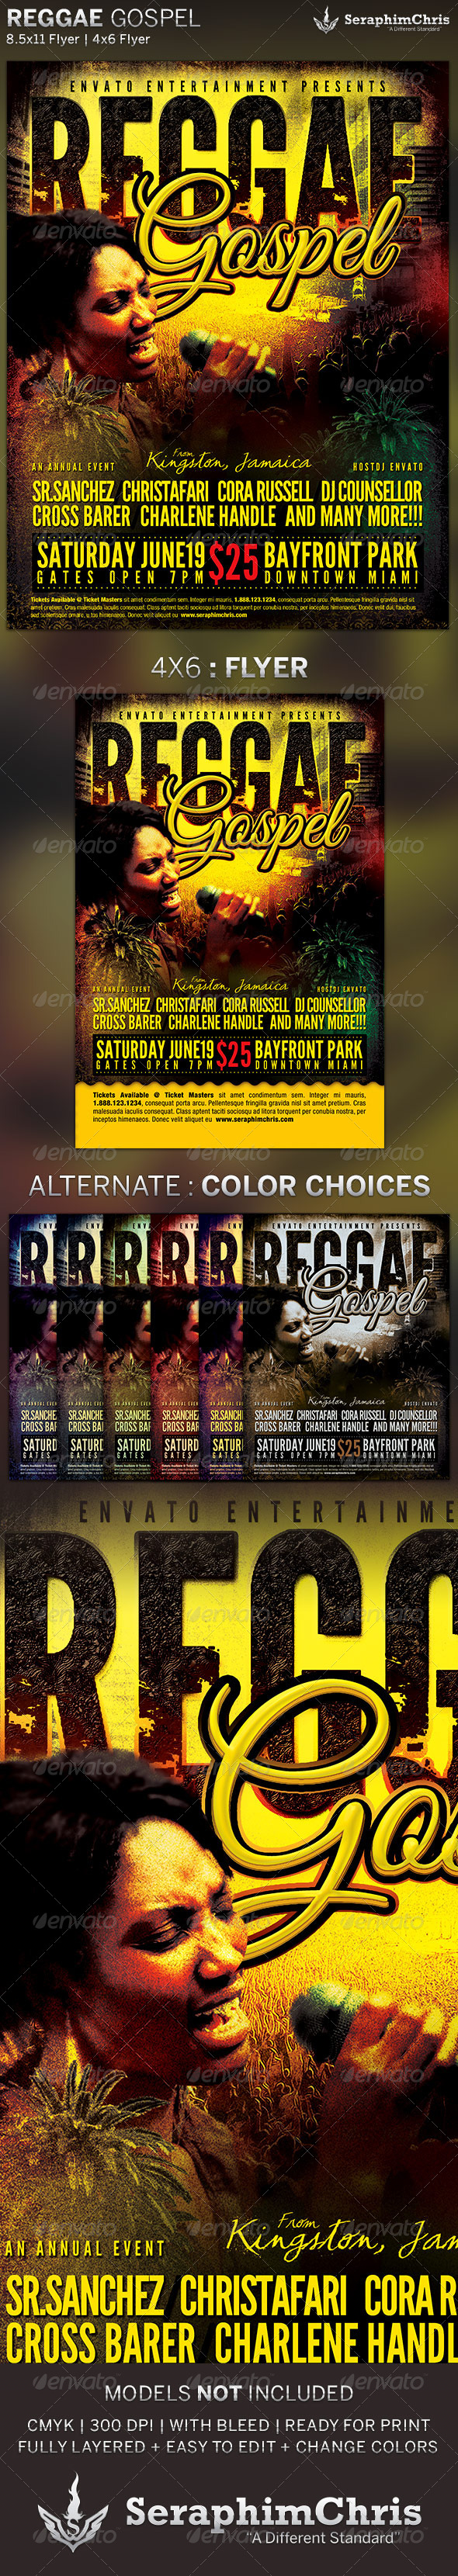 GraphicRiver Reggae Gospel Church Concert Flyer Template 4758748